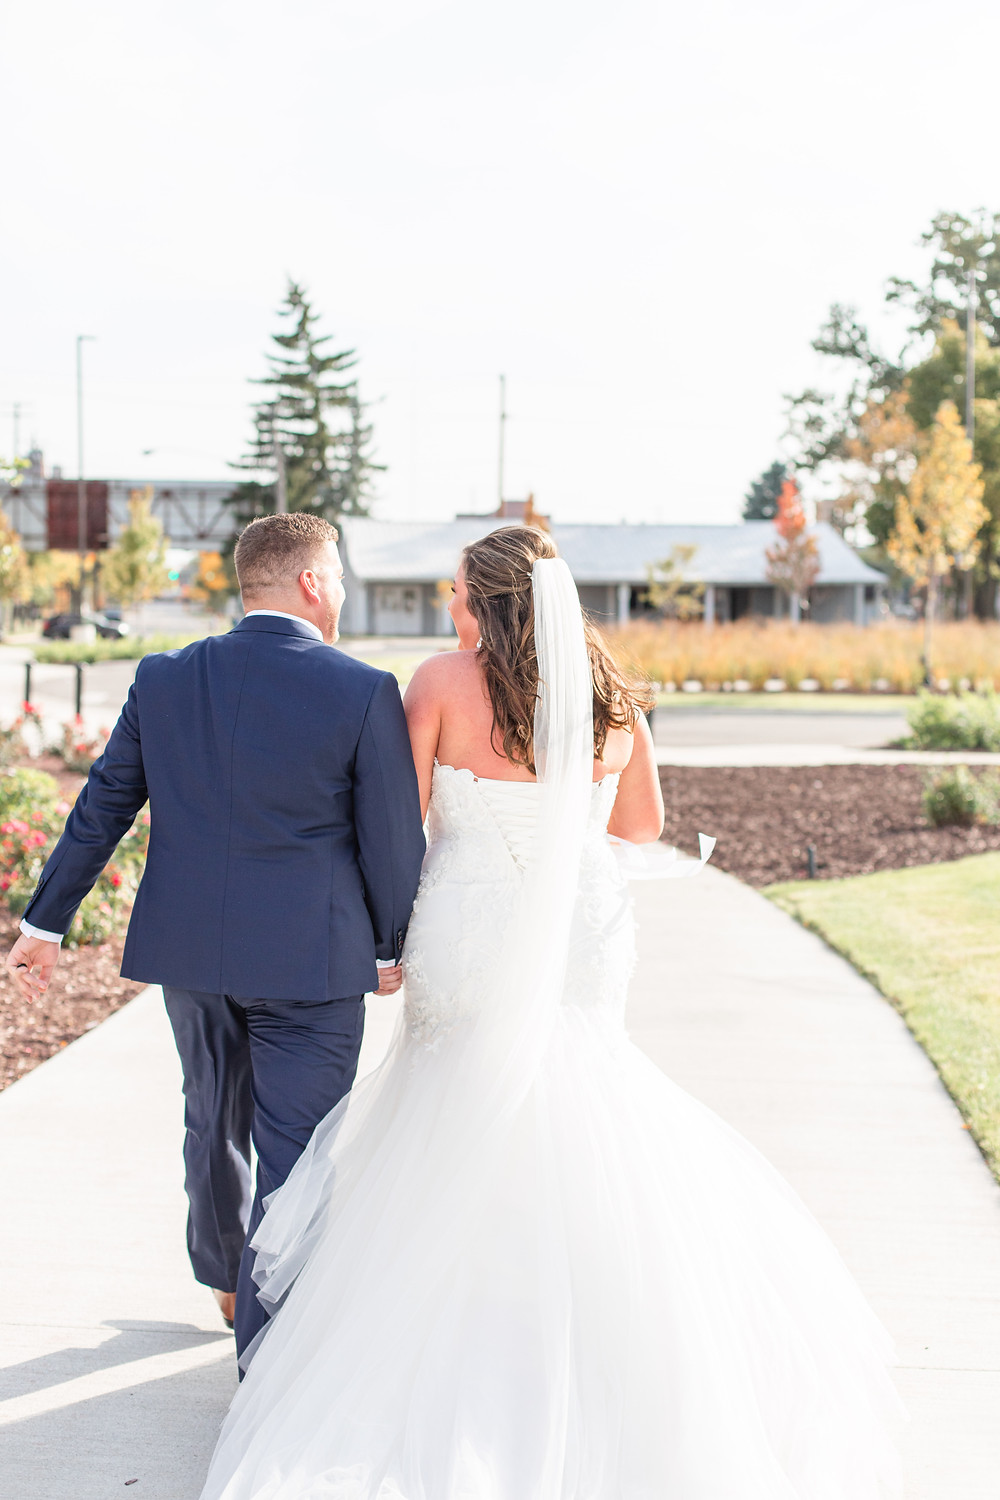 bride and groom walking away from ceremony American 1 event center Jackson michigan